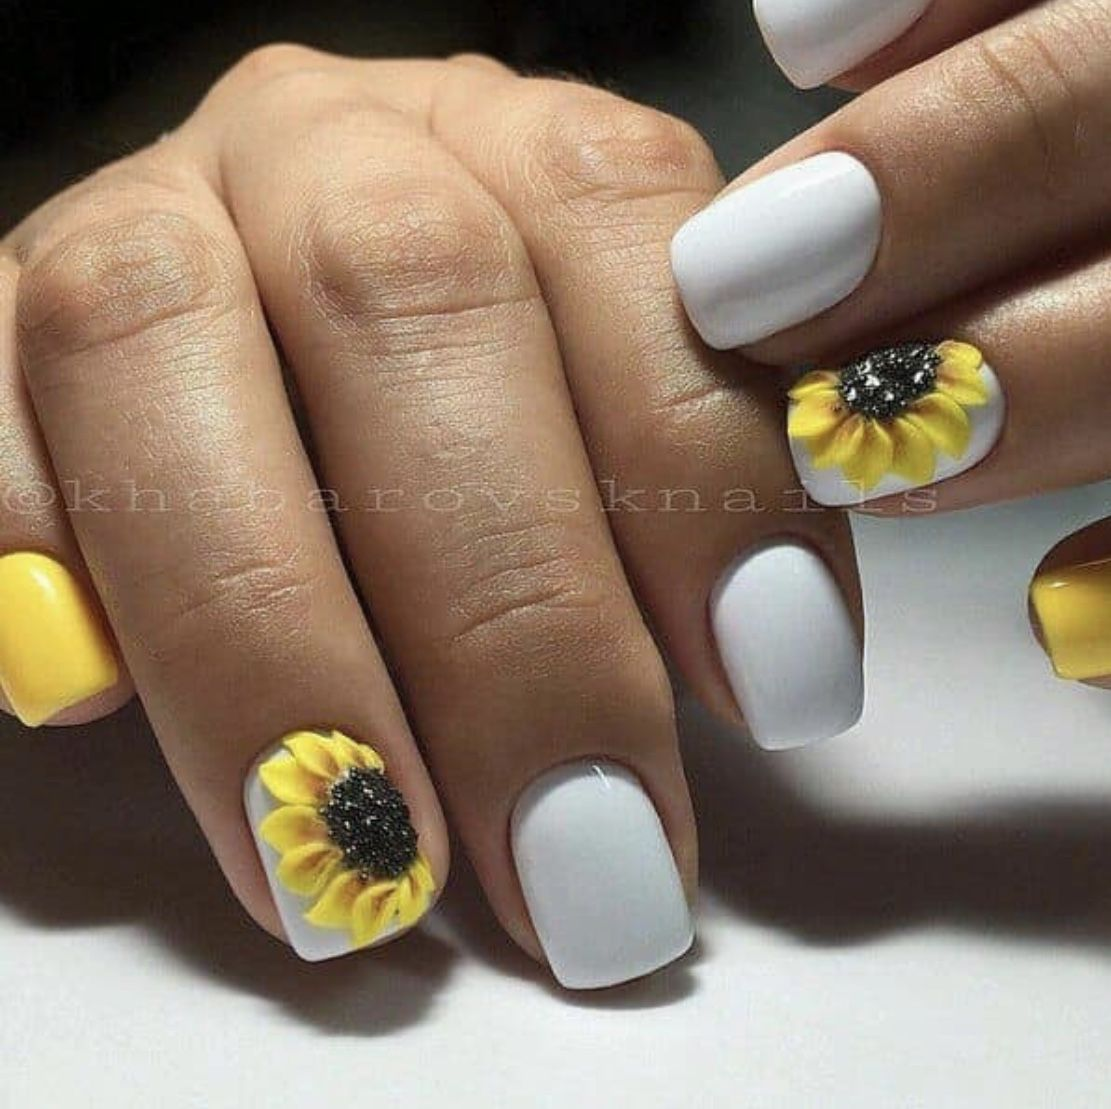 I Saw These Beautiful White Acrylic Sunflower Nails On A Board I Follow Of Nail Designs These Are So Sunflower Nails Yellow Nails Yellow Nail Art